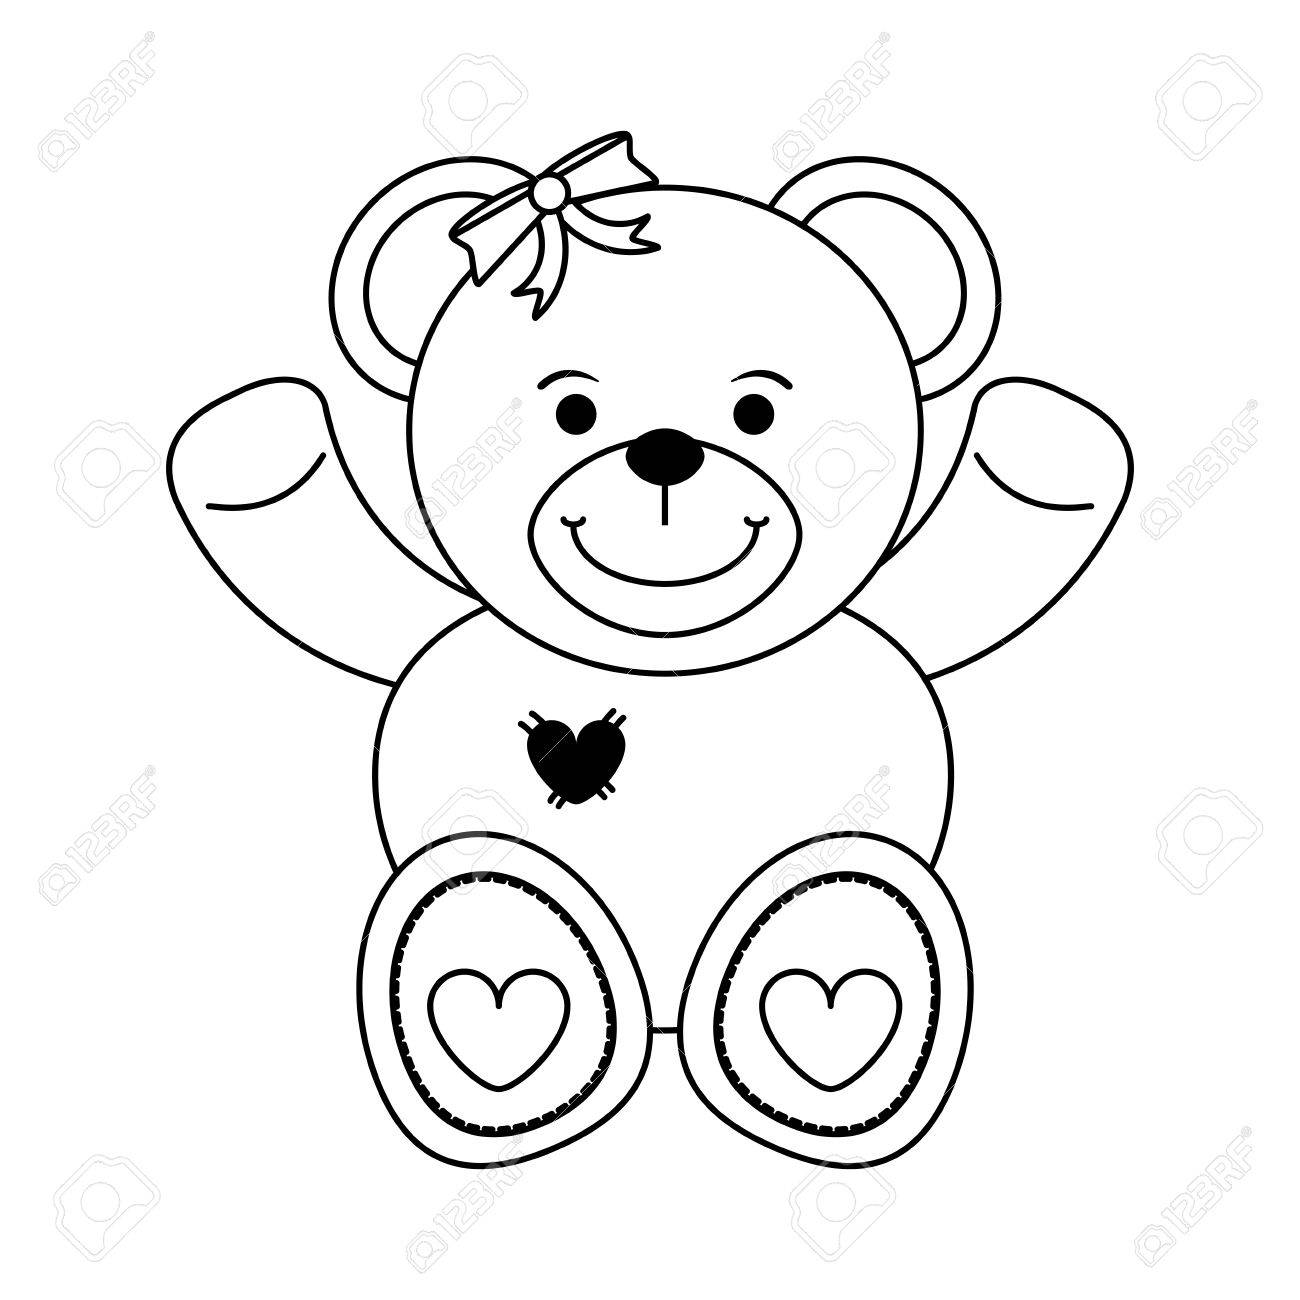 1300x1300 Girly Teddy Bear Baby Or Shower Related Icon Image Vector